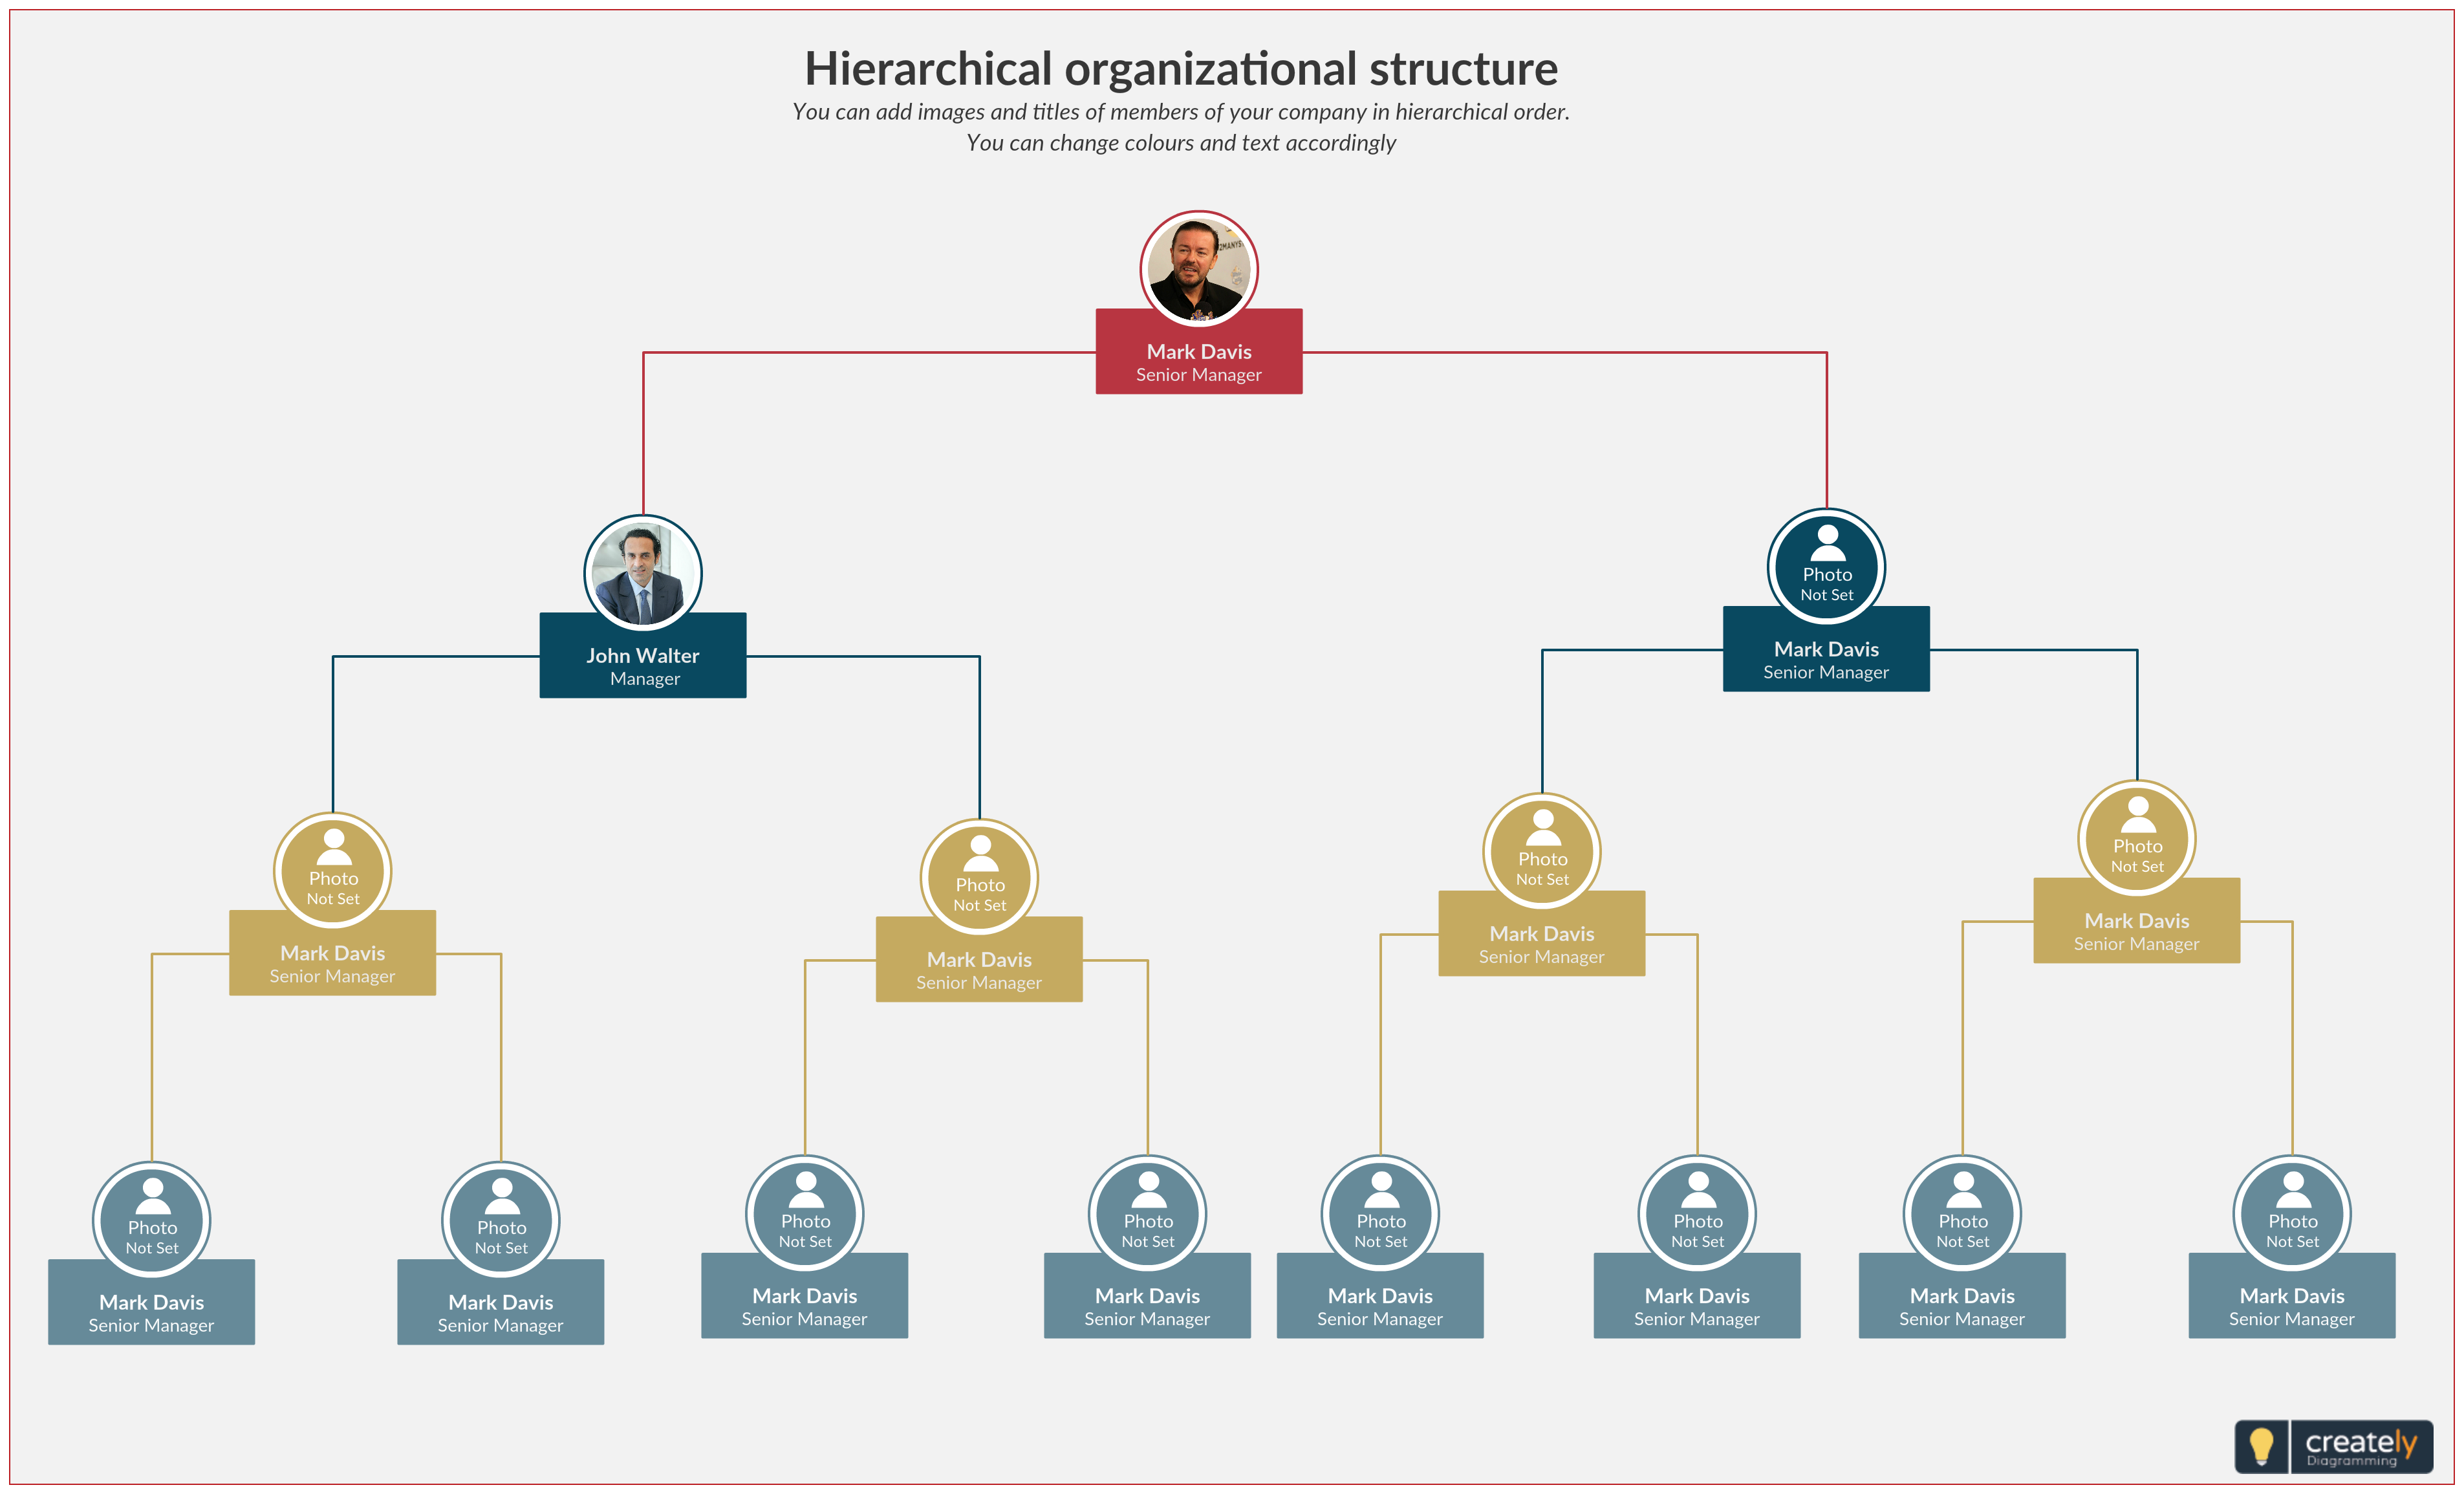 Hierarchical Organization Structure Is A Top Down Pyramid